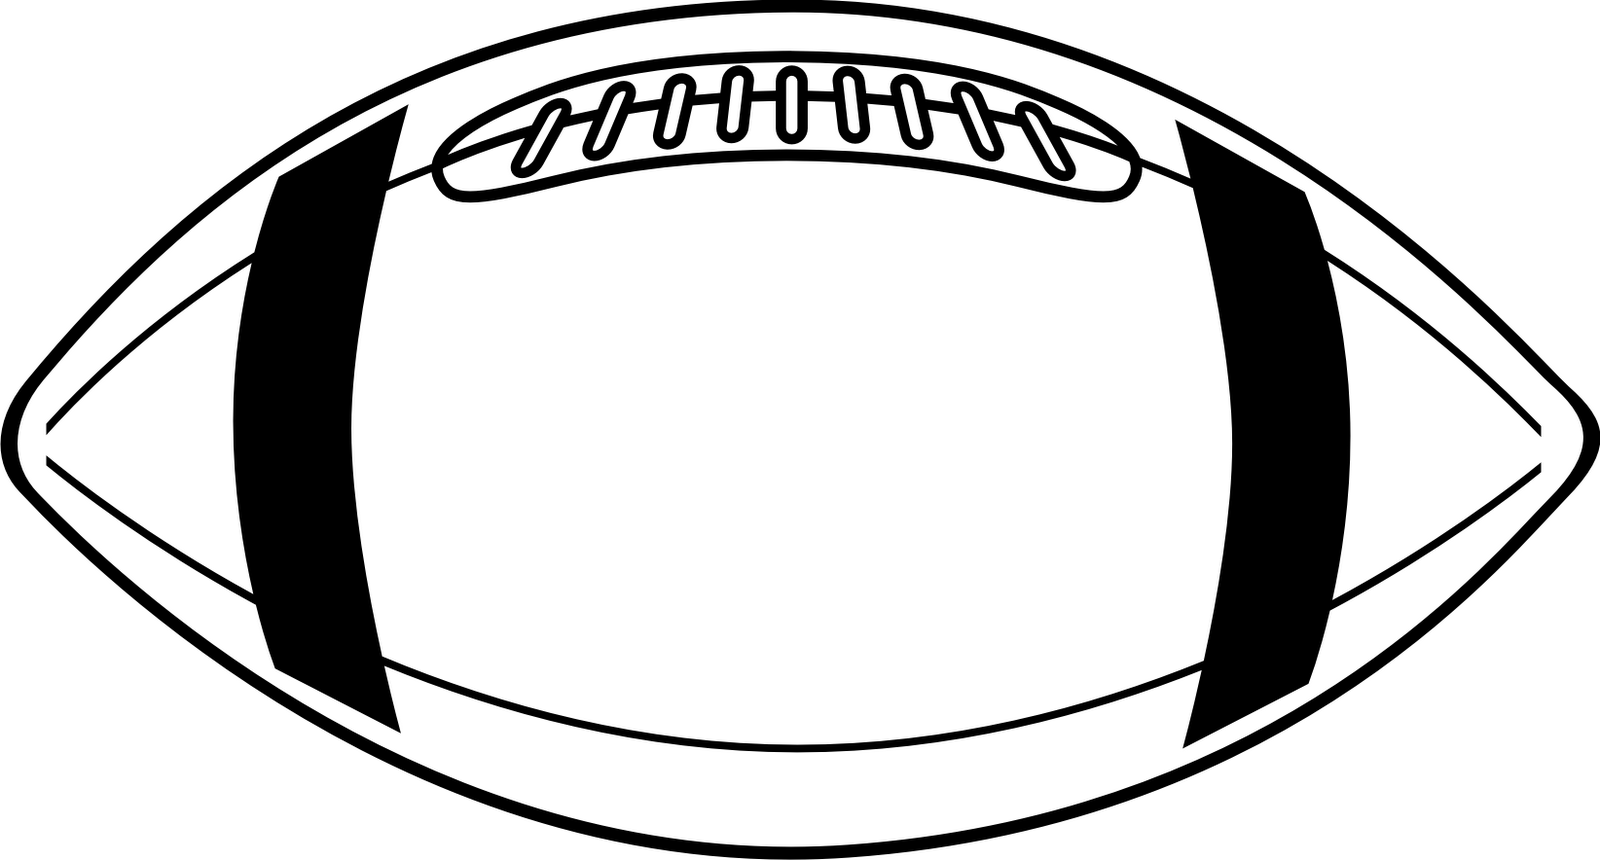 Football Laces Clip Art